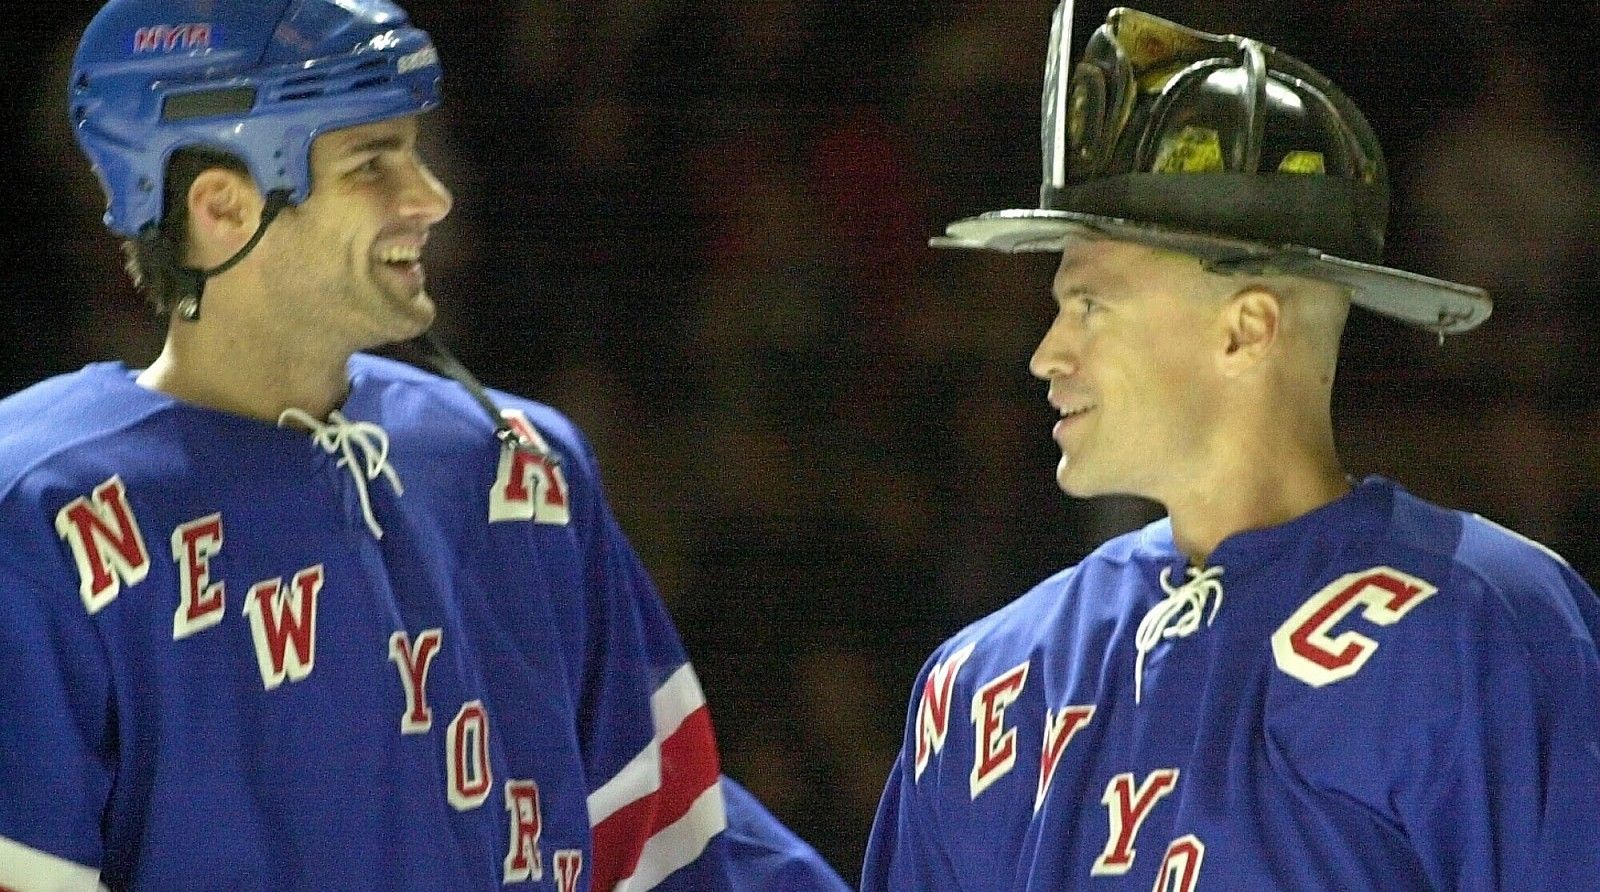 Top 10 Highest Payrolls In NHL History